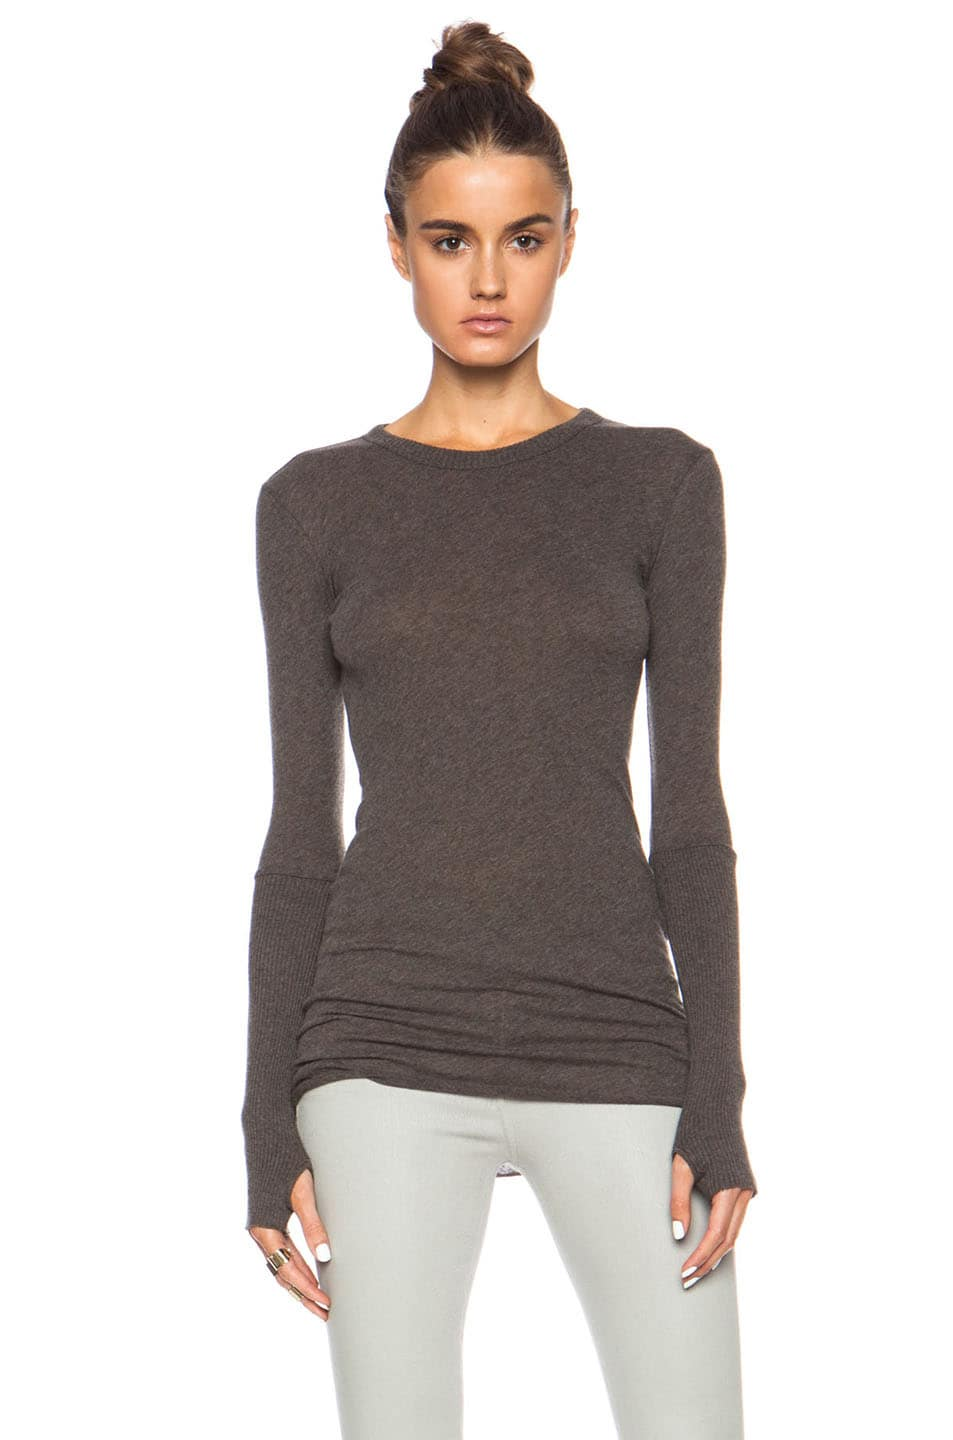 Image 1 of Enza Costa Cashmere Cuffed Crew Cotton-Blend Sweater in Major Brown